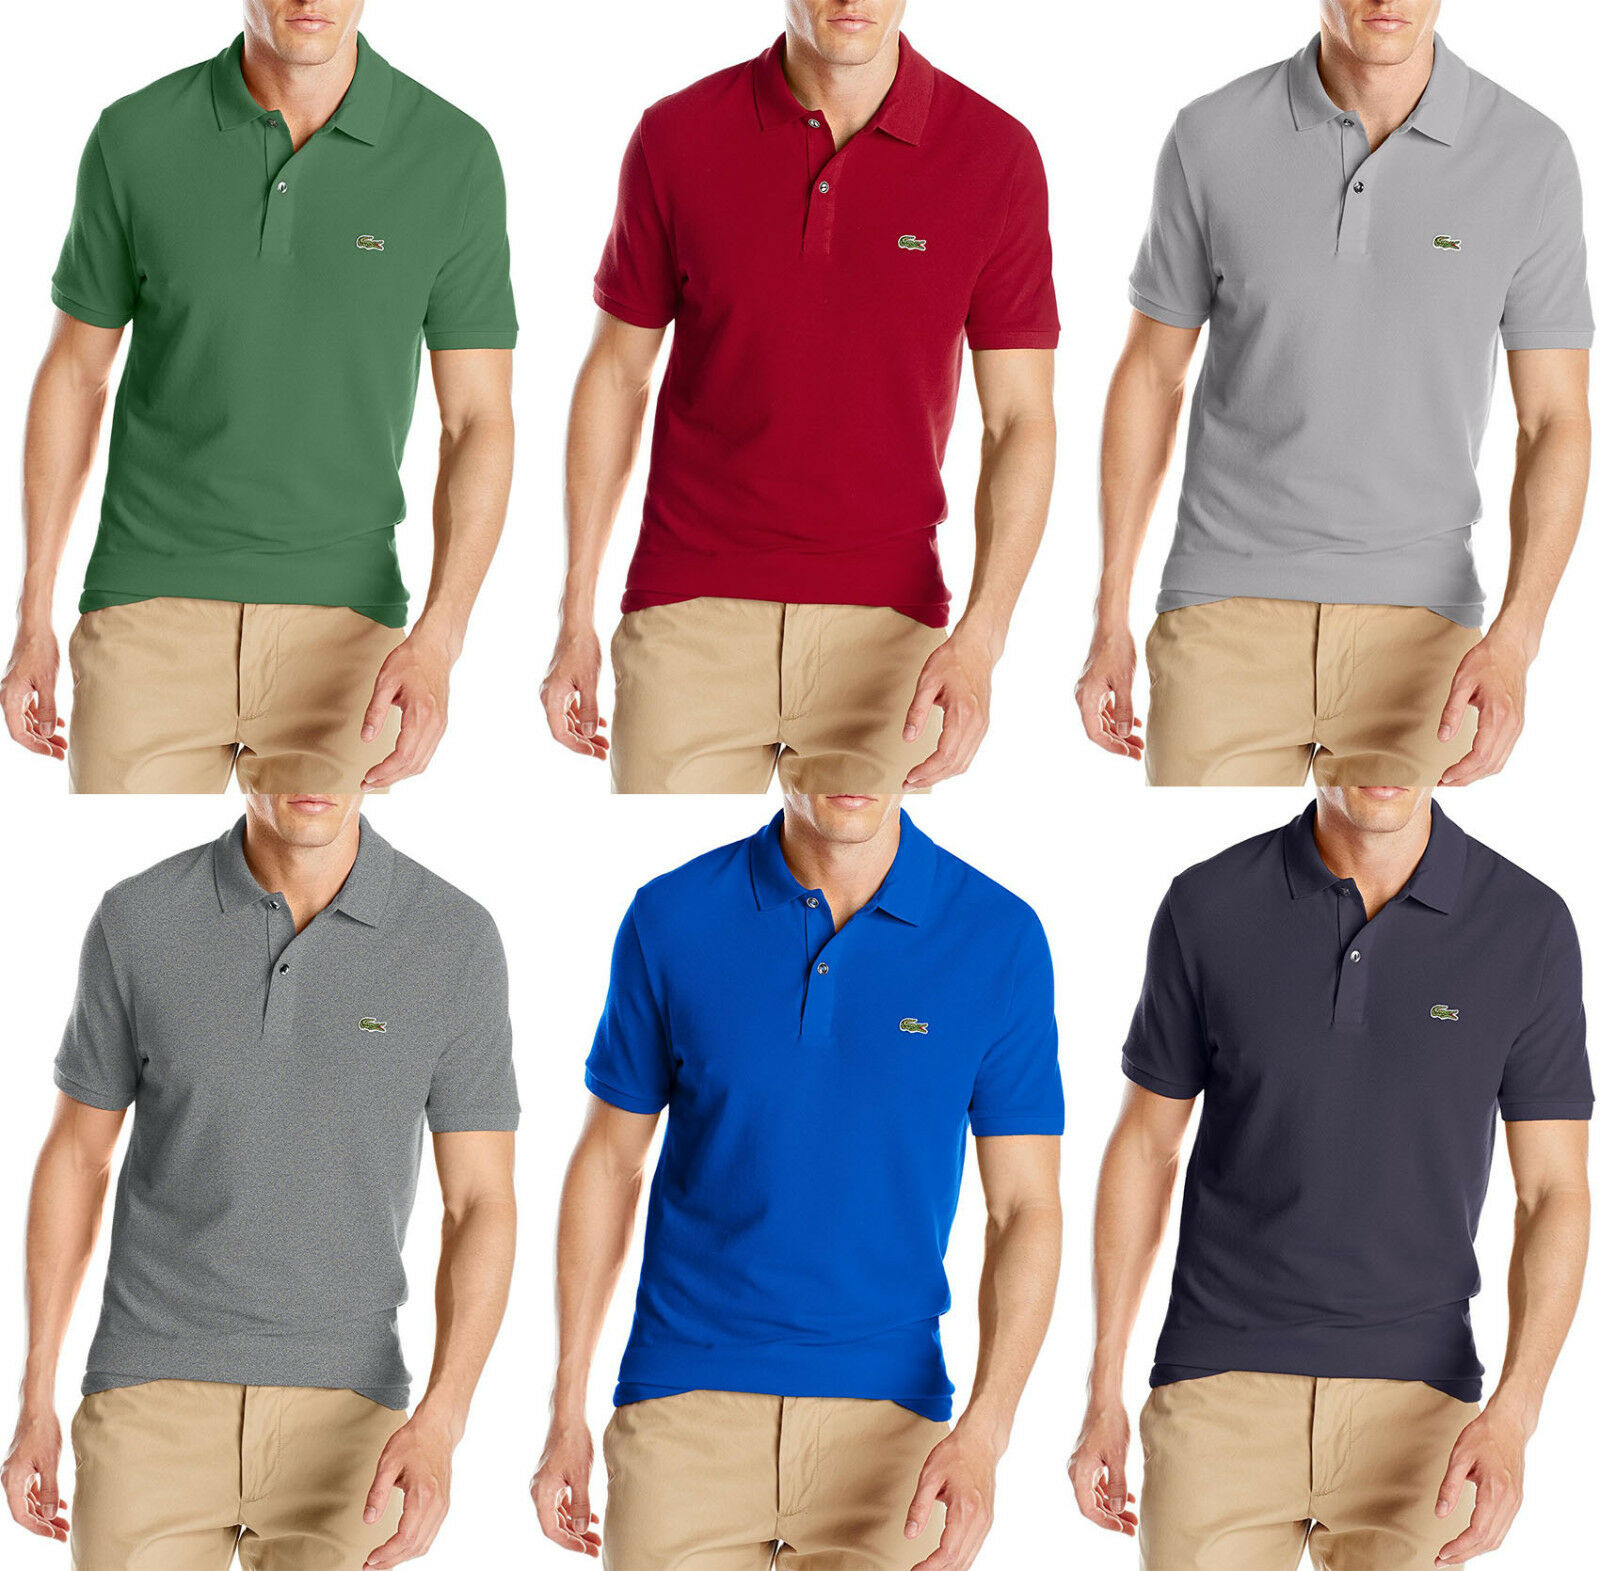 New Mens Lacoste Slim Fit Solid Short Sleeve Classic Pique Polo Shirt